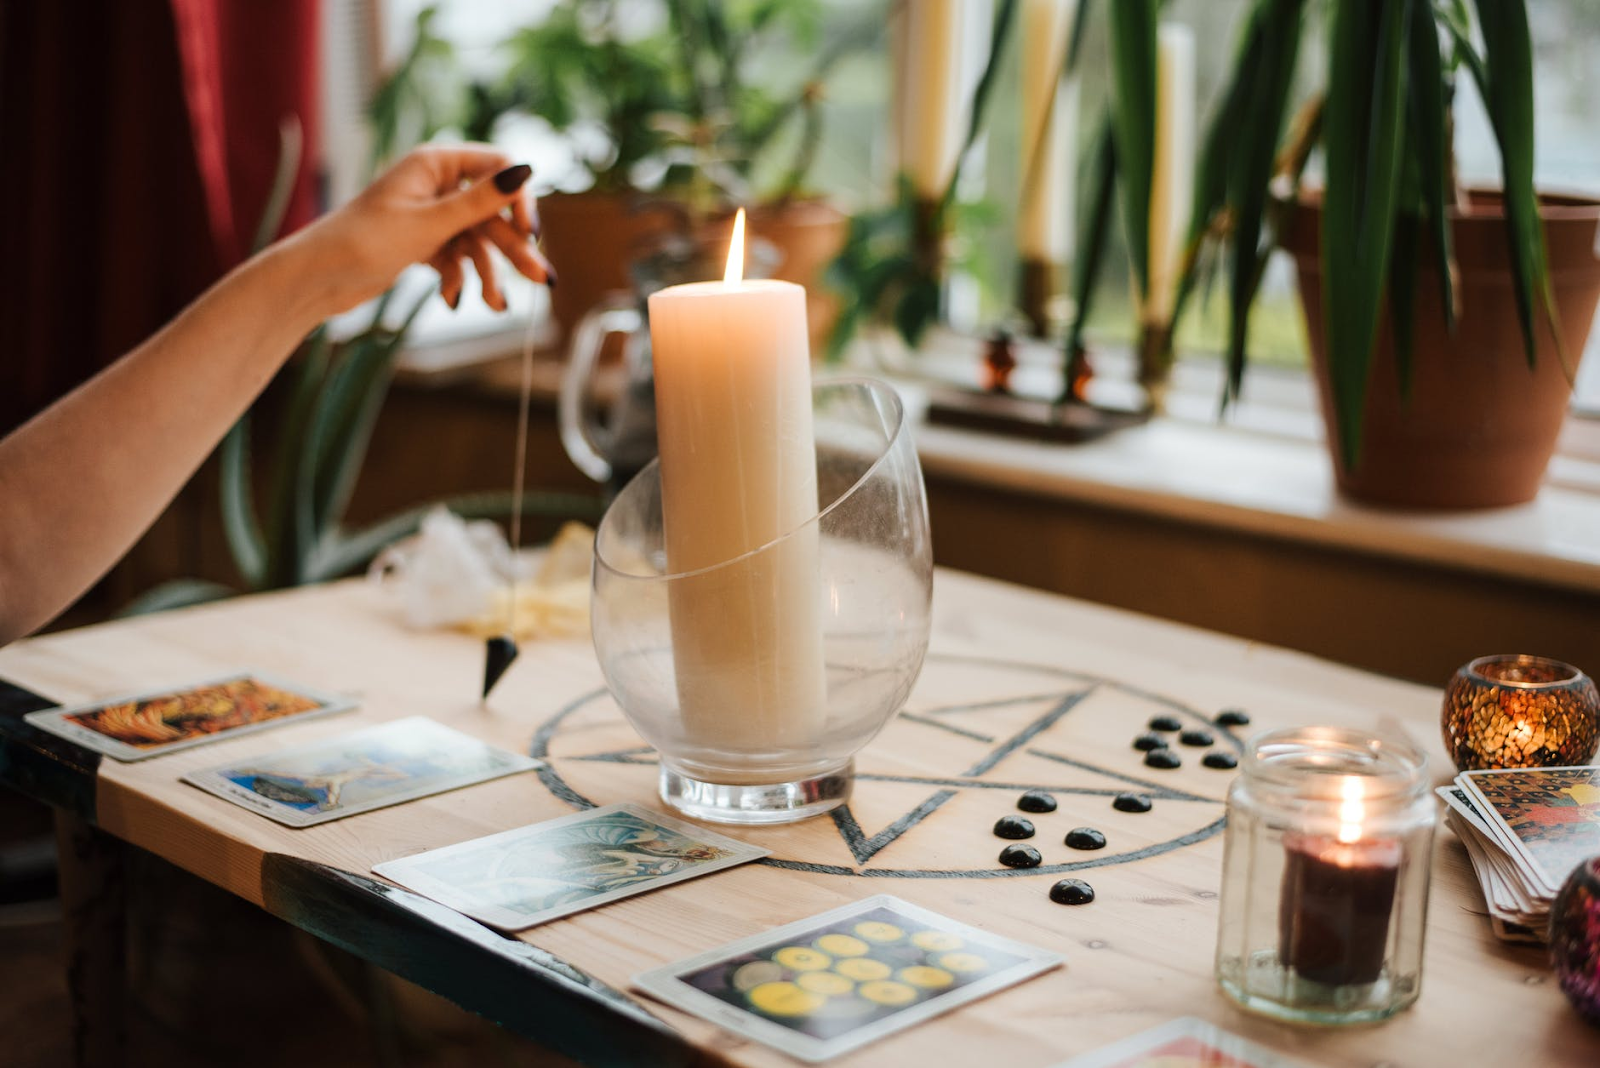 2021 FREE TAROT READING GUIDE | 10 BEST FREE TAROT READING SITES